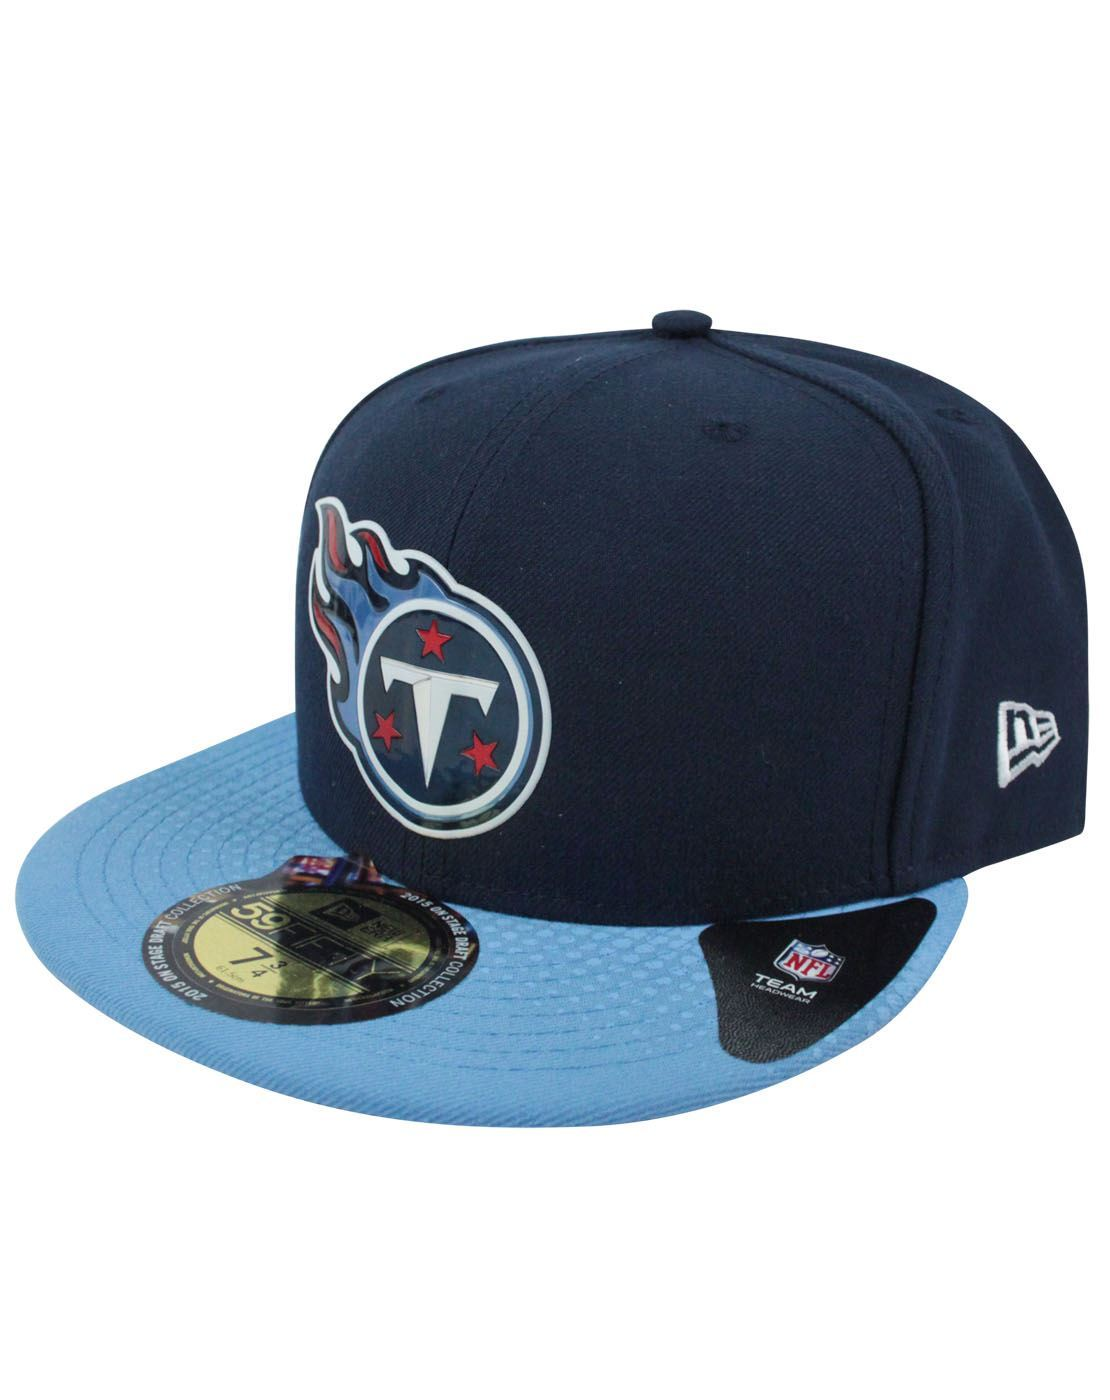 New Era 59Fifty NFL Tennessee Titans Draft Cap – Vanilla Underground 11a178ed5